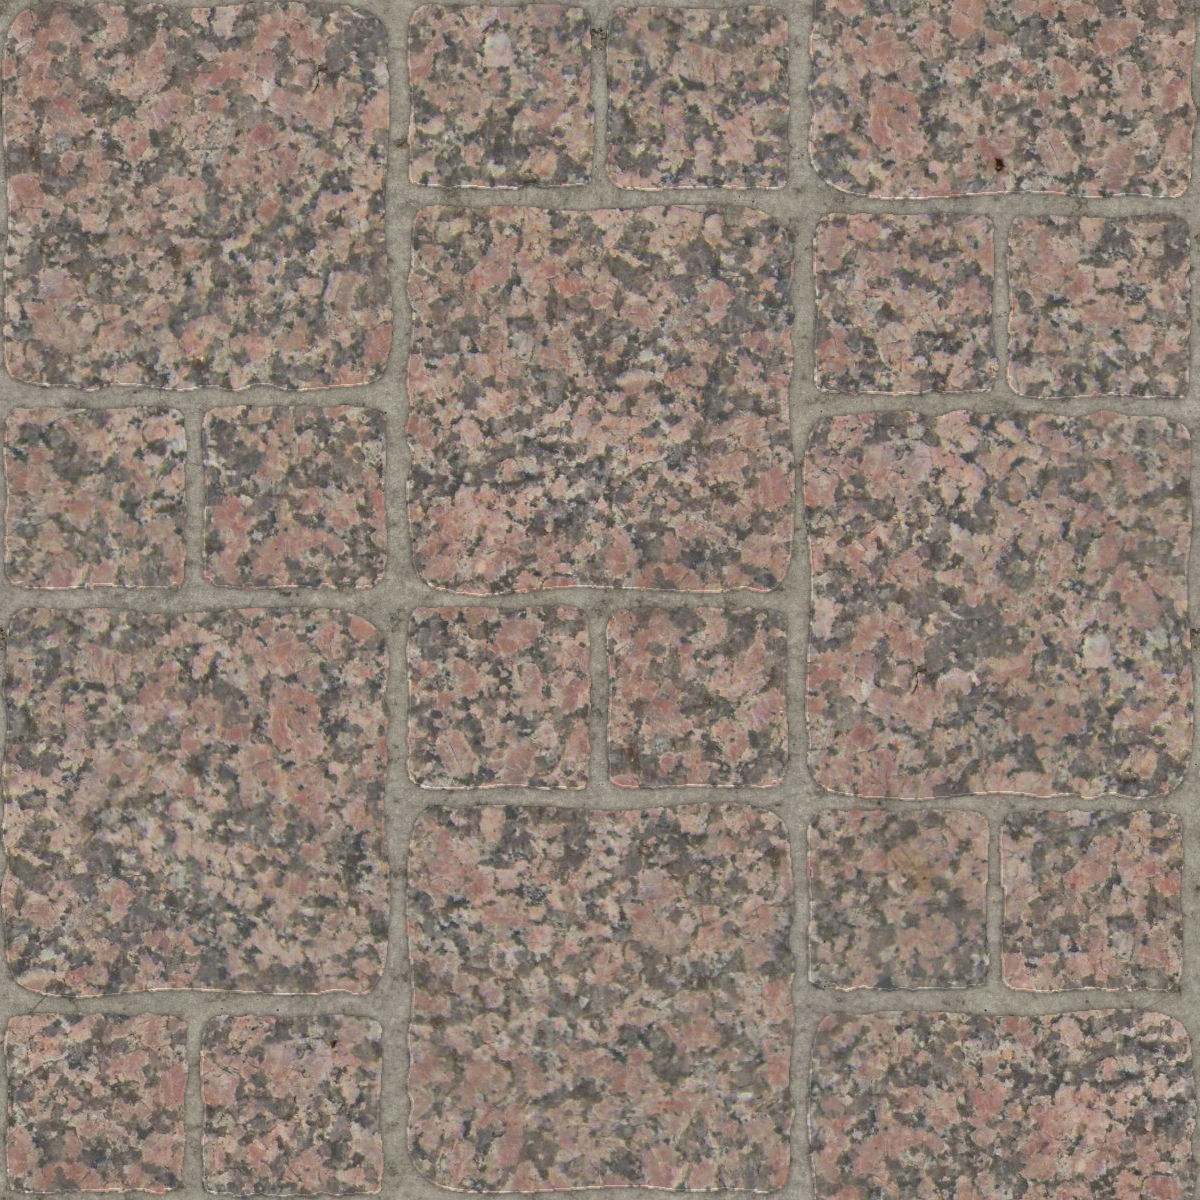 High Resolution Seamless Textures Seamless Marble Floor Tile Texture